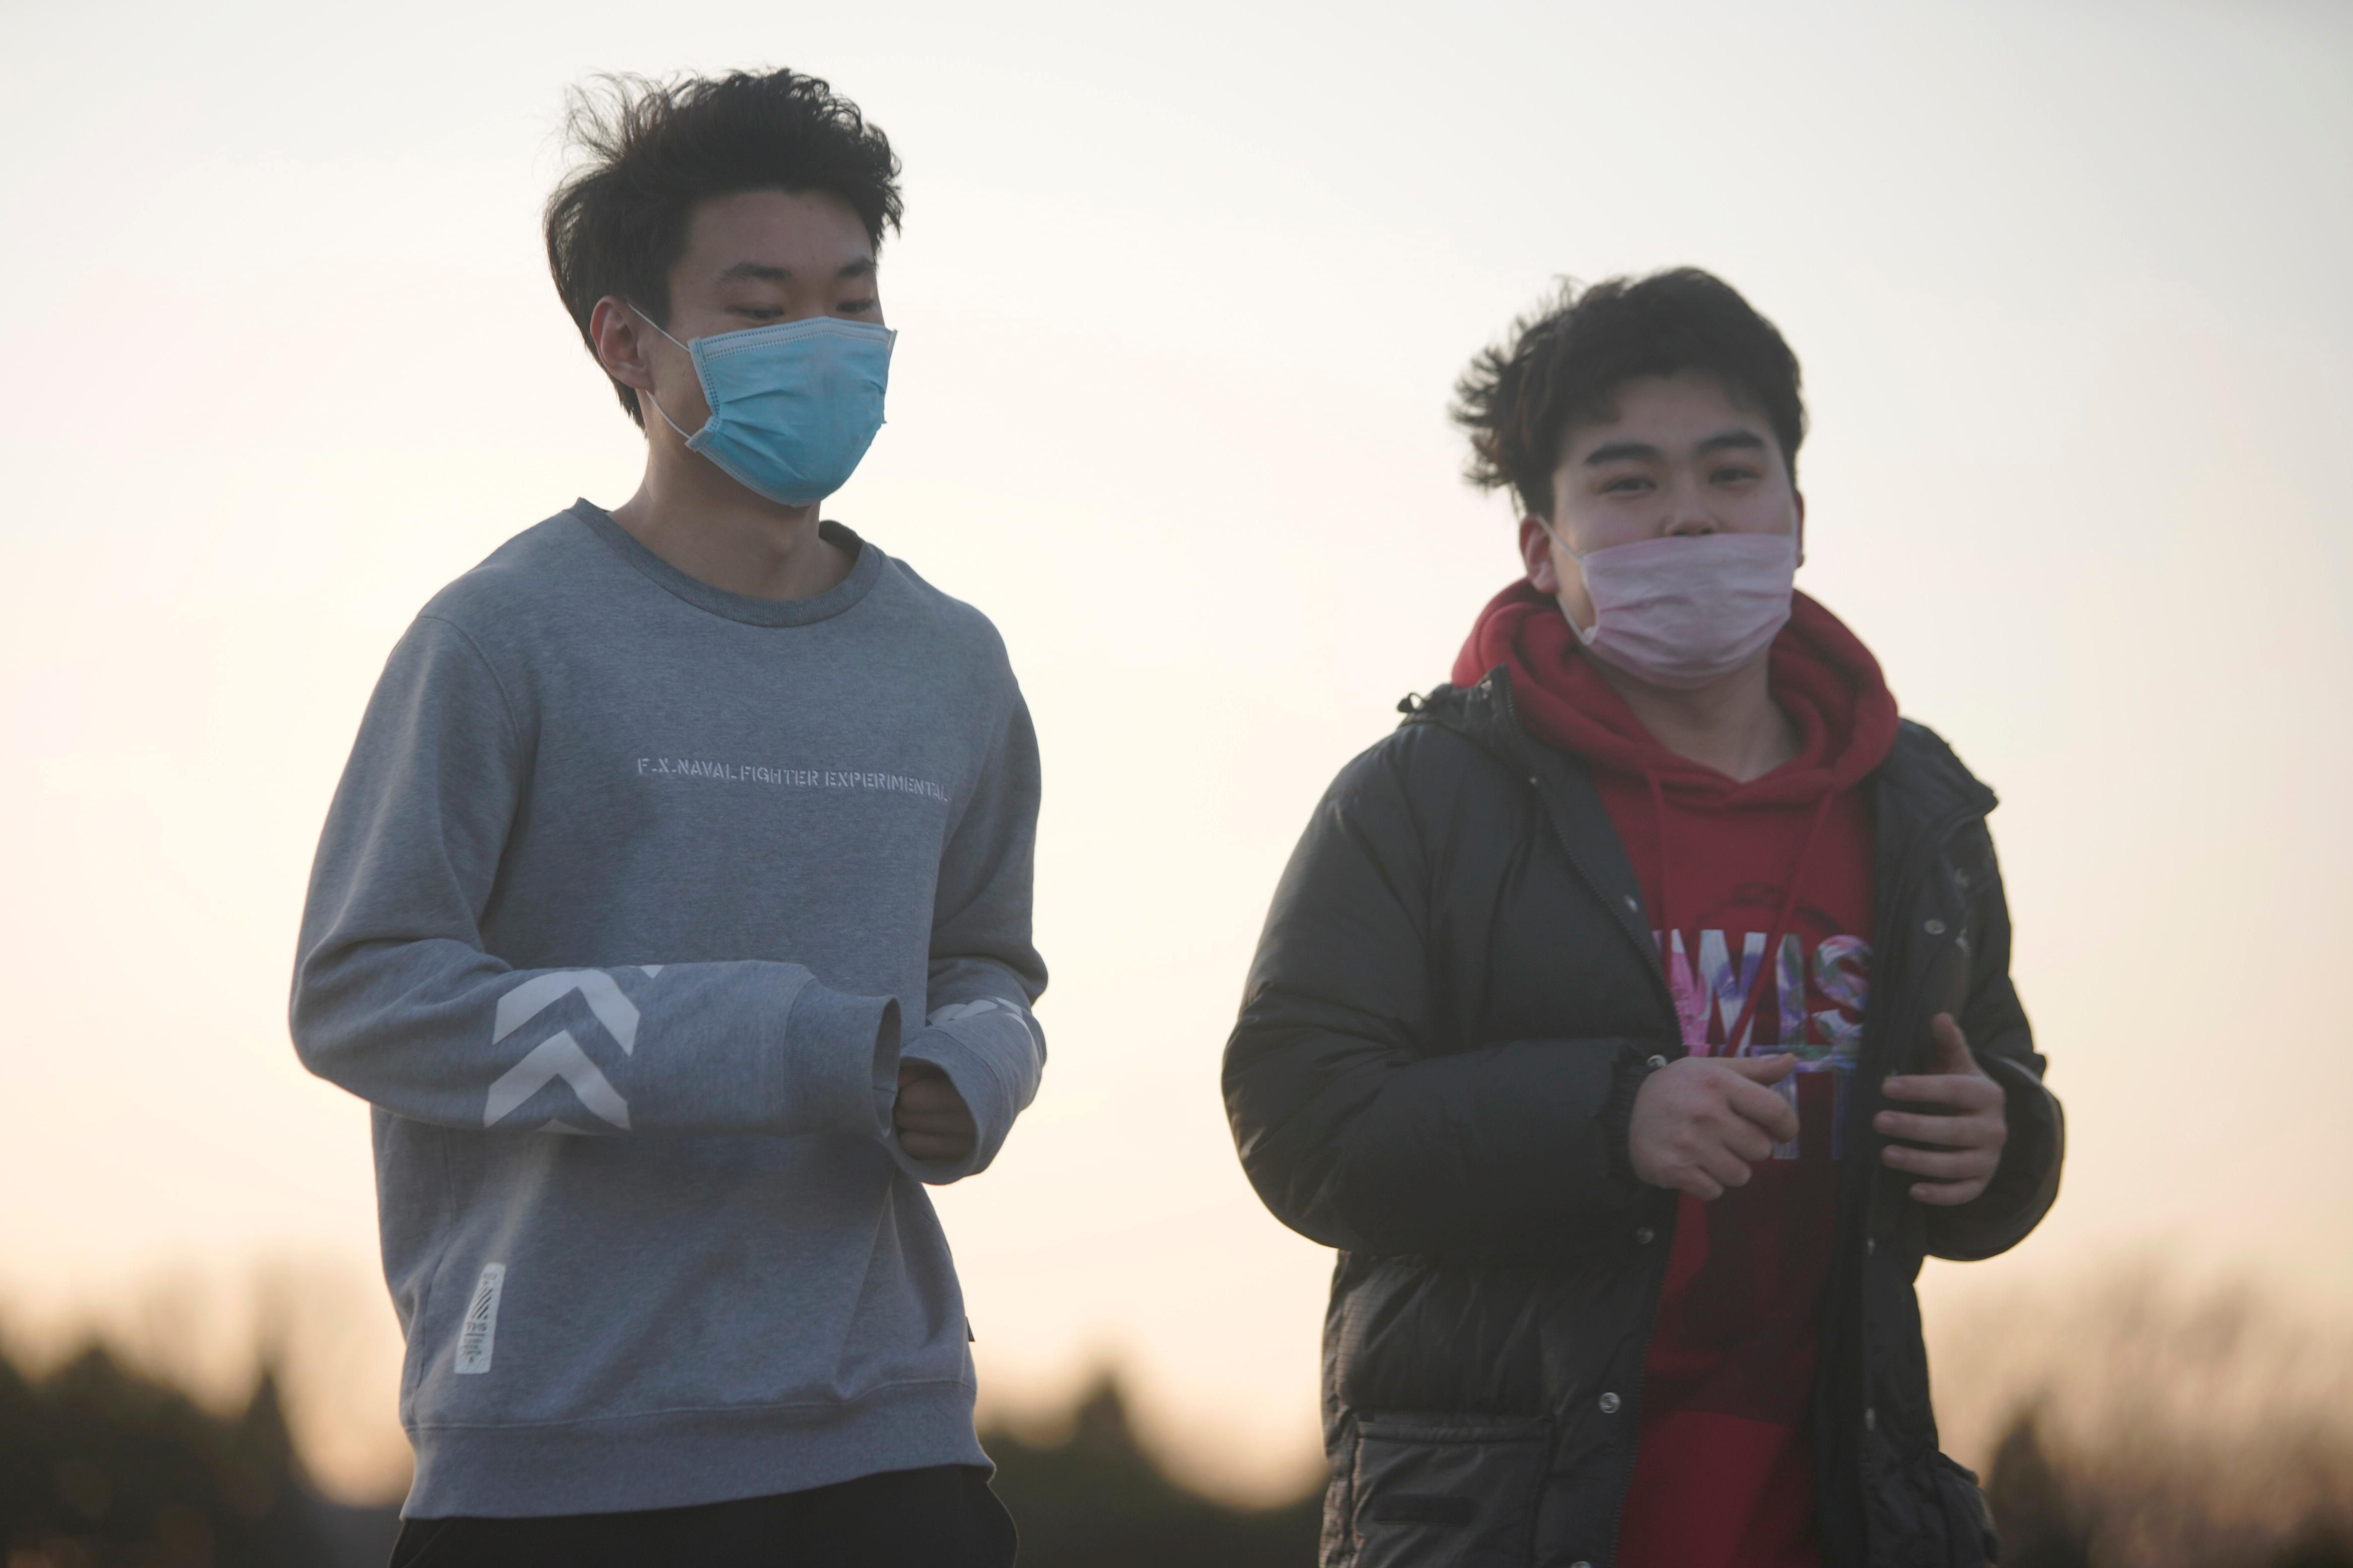 Concern over coronavirus spread as cases jump in South Korea, Italy and Iran